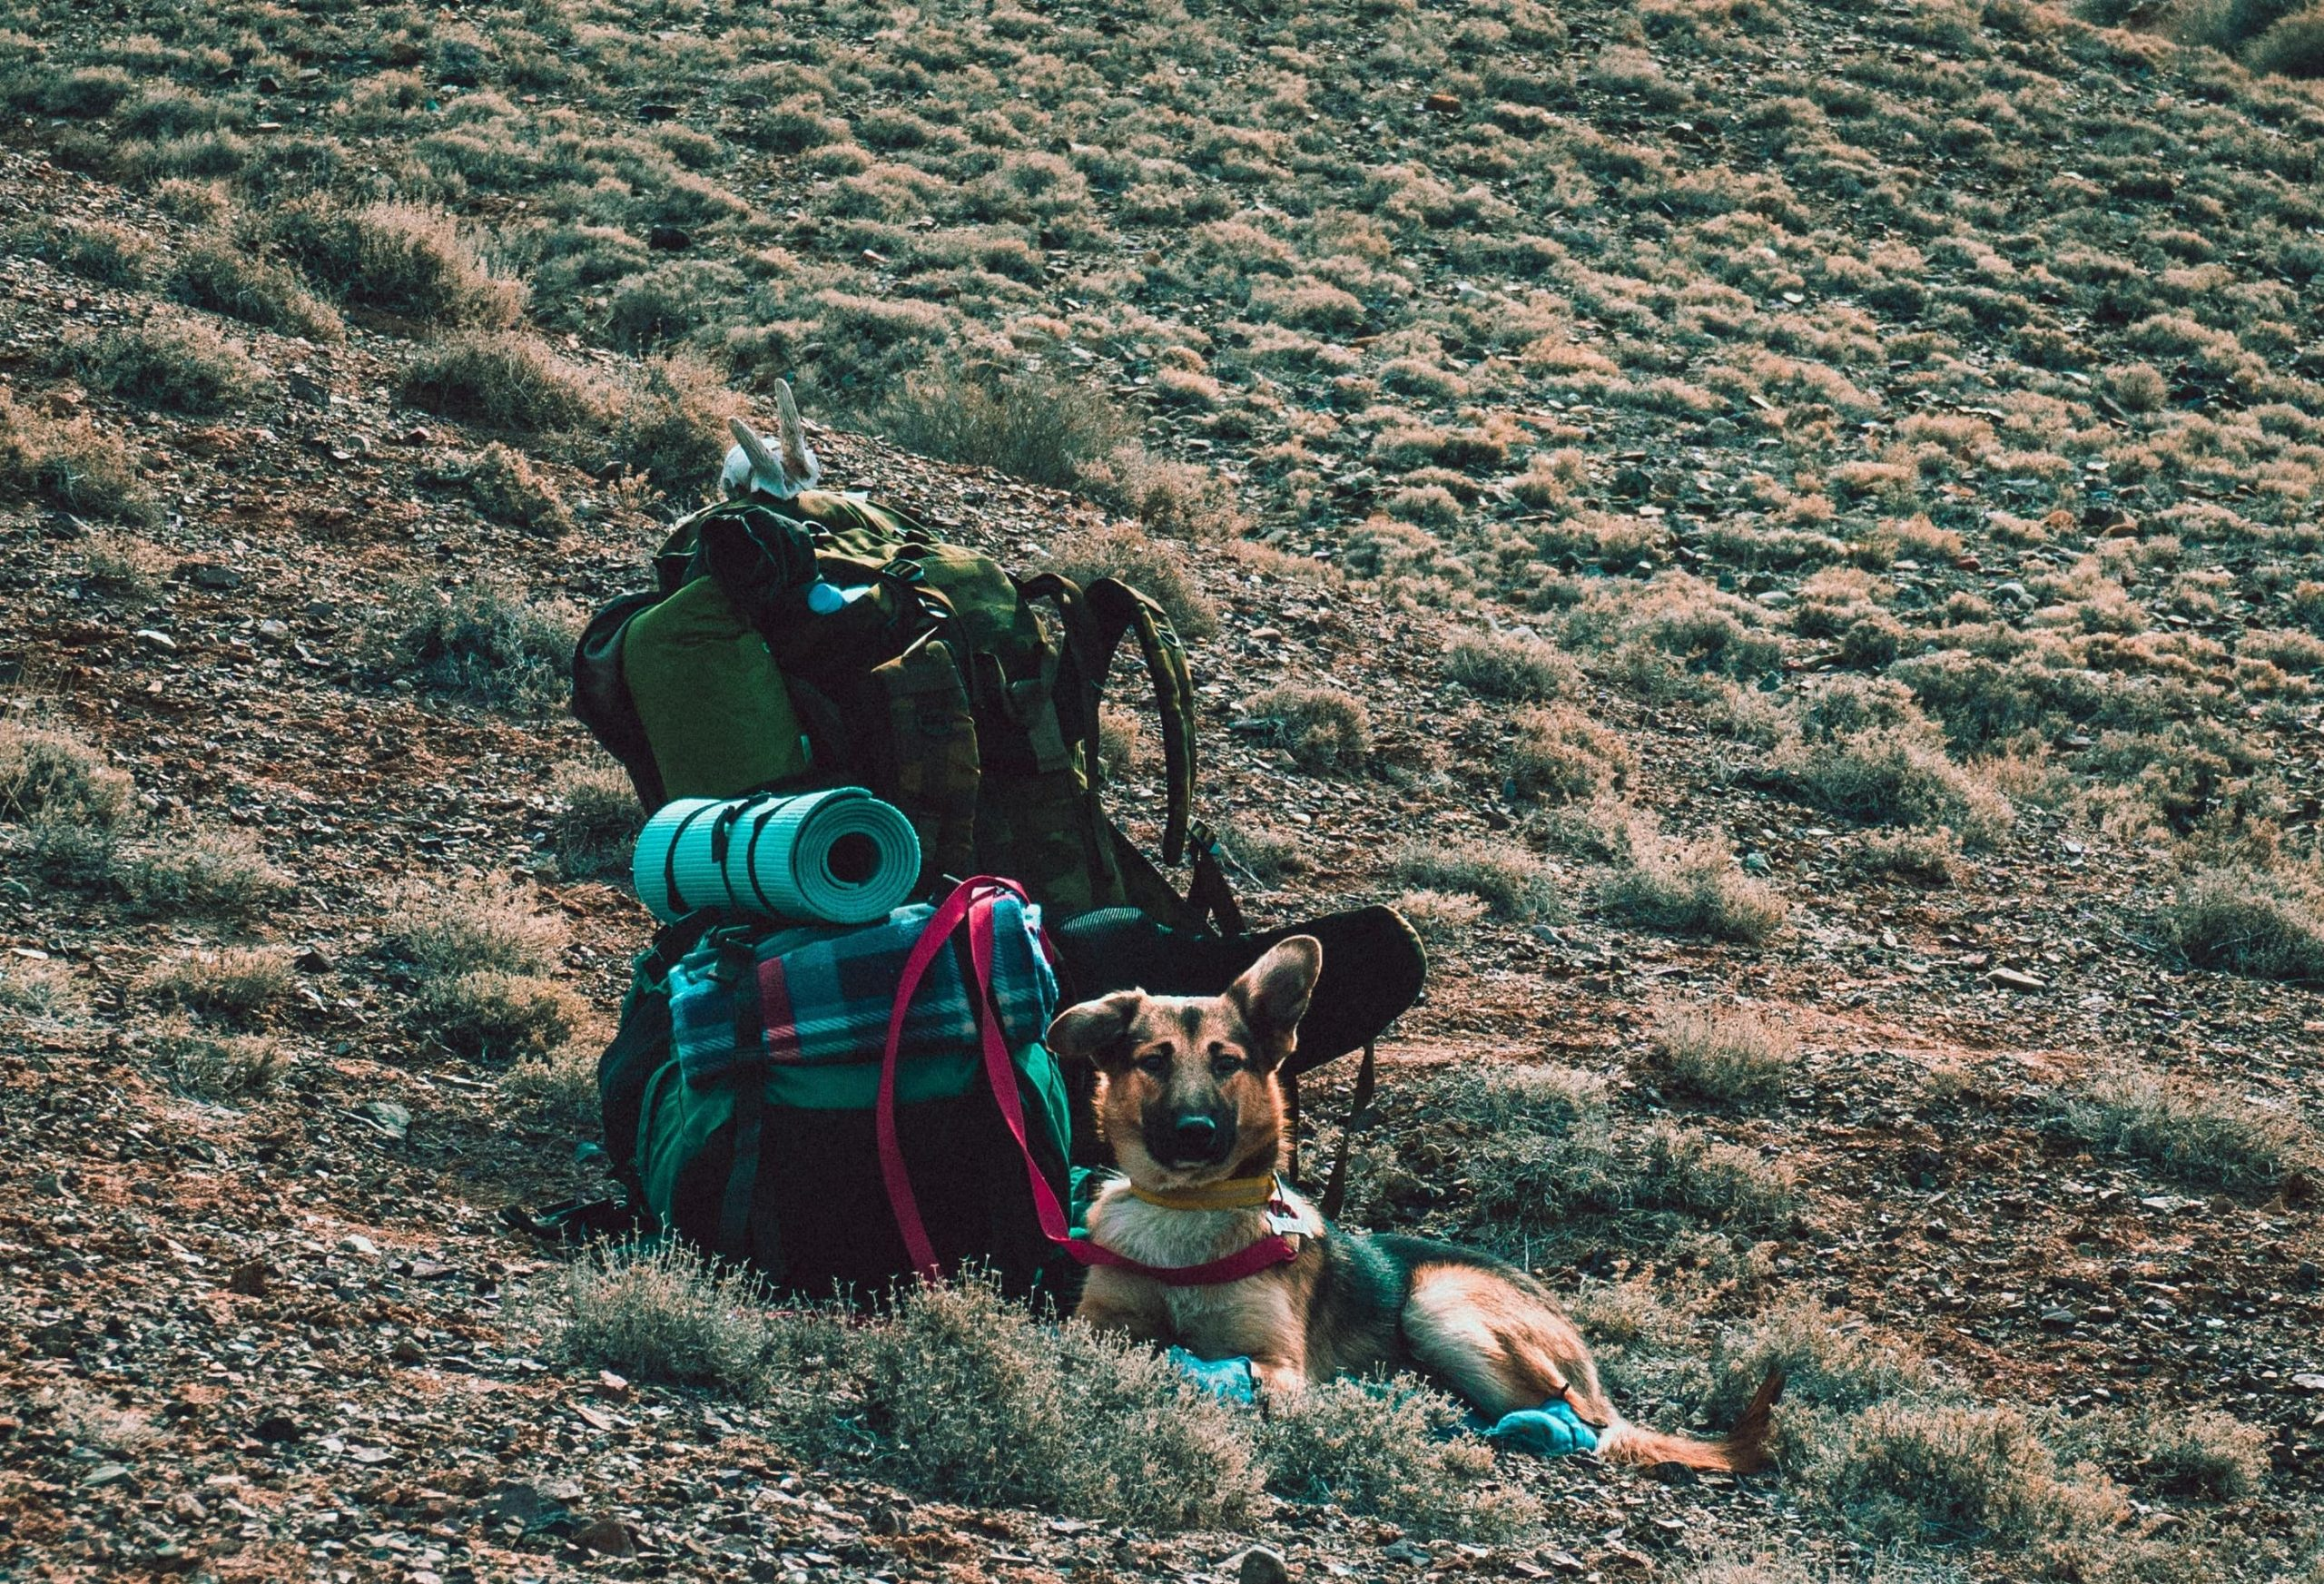 shepherd dog in the desert with a backpack